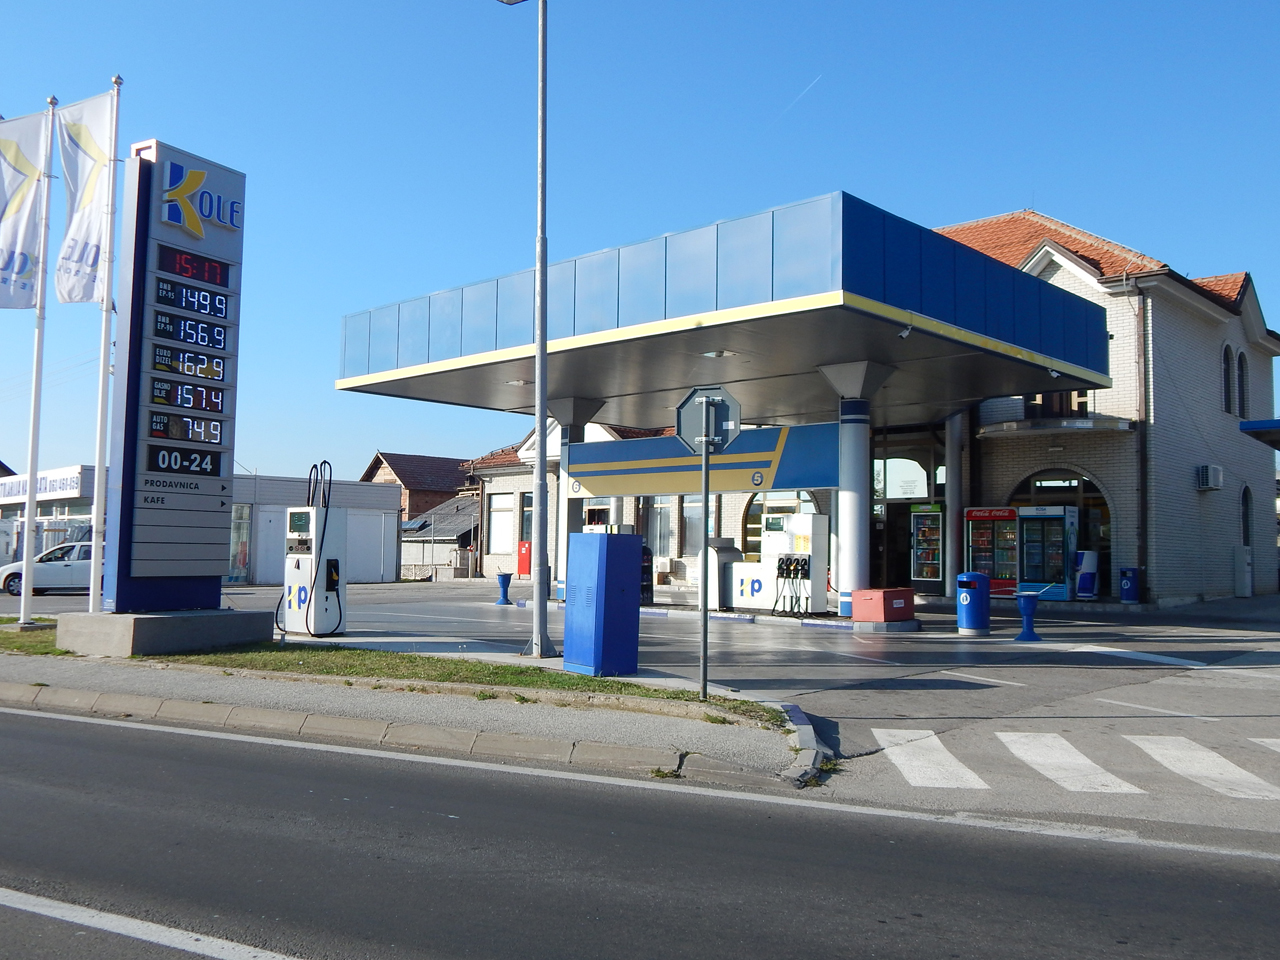 KOLE PETROL Vehicle registration and testing Kragujevac - Photo 1